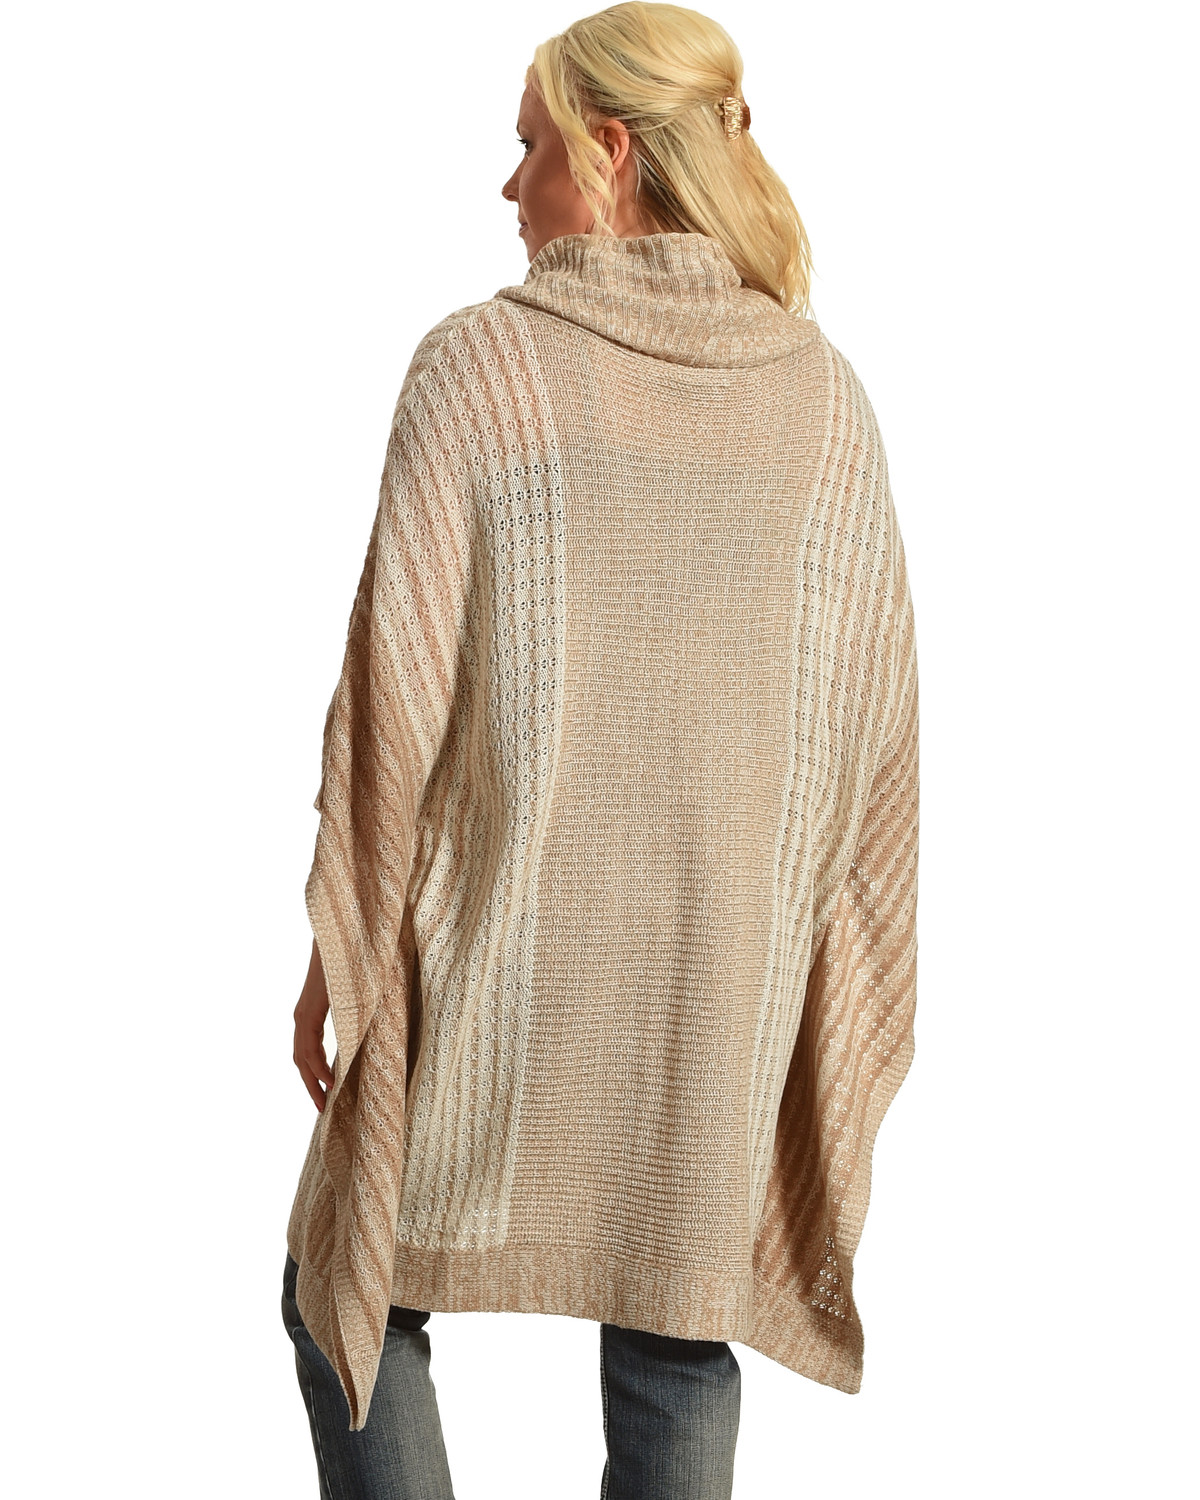 Allison Brittney Women's Stripe Cowl Neck Poncho - Country Outfitter